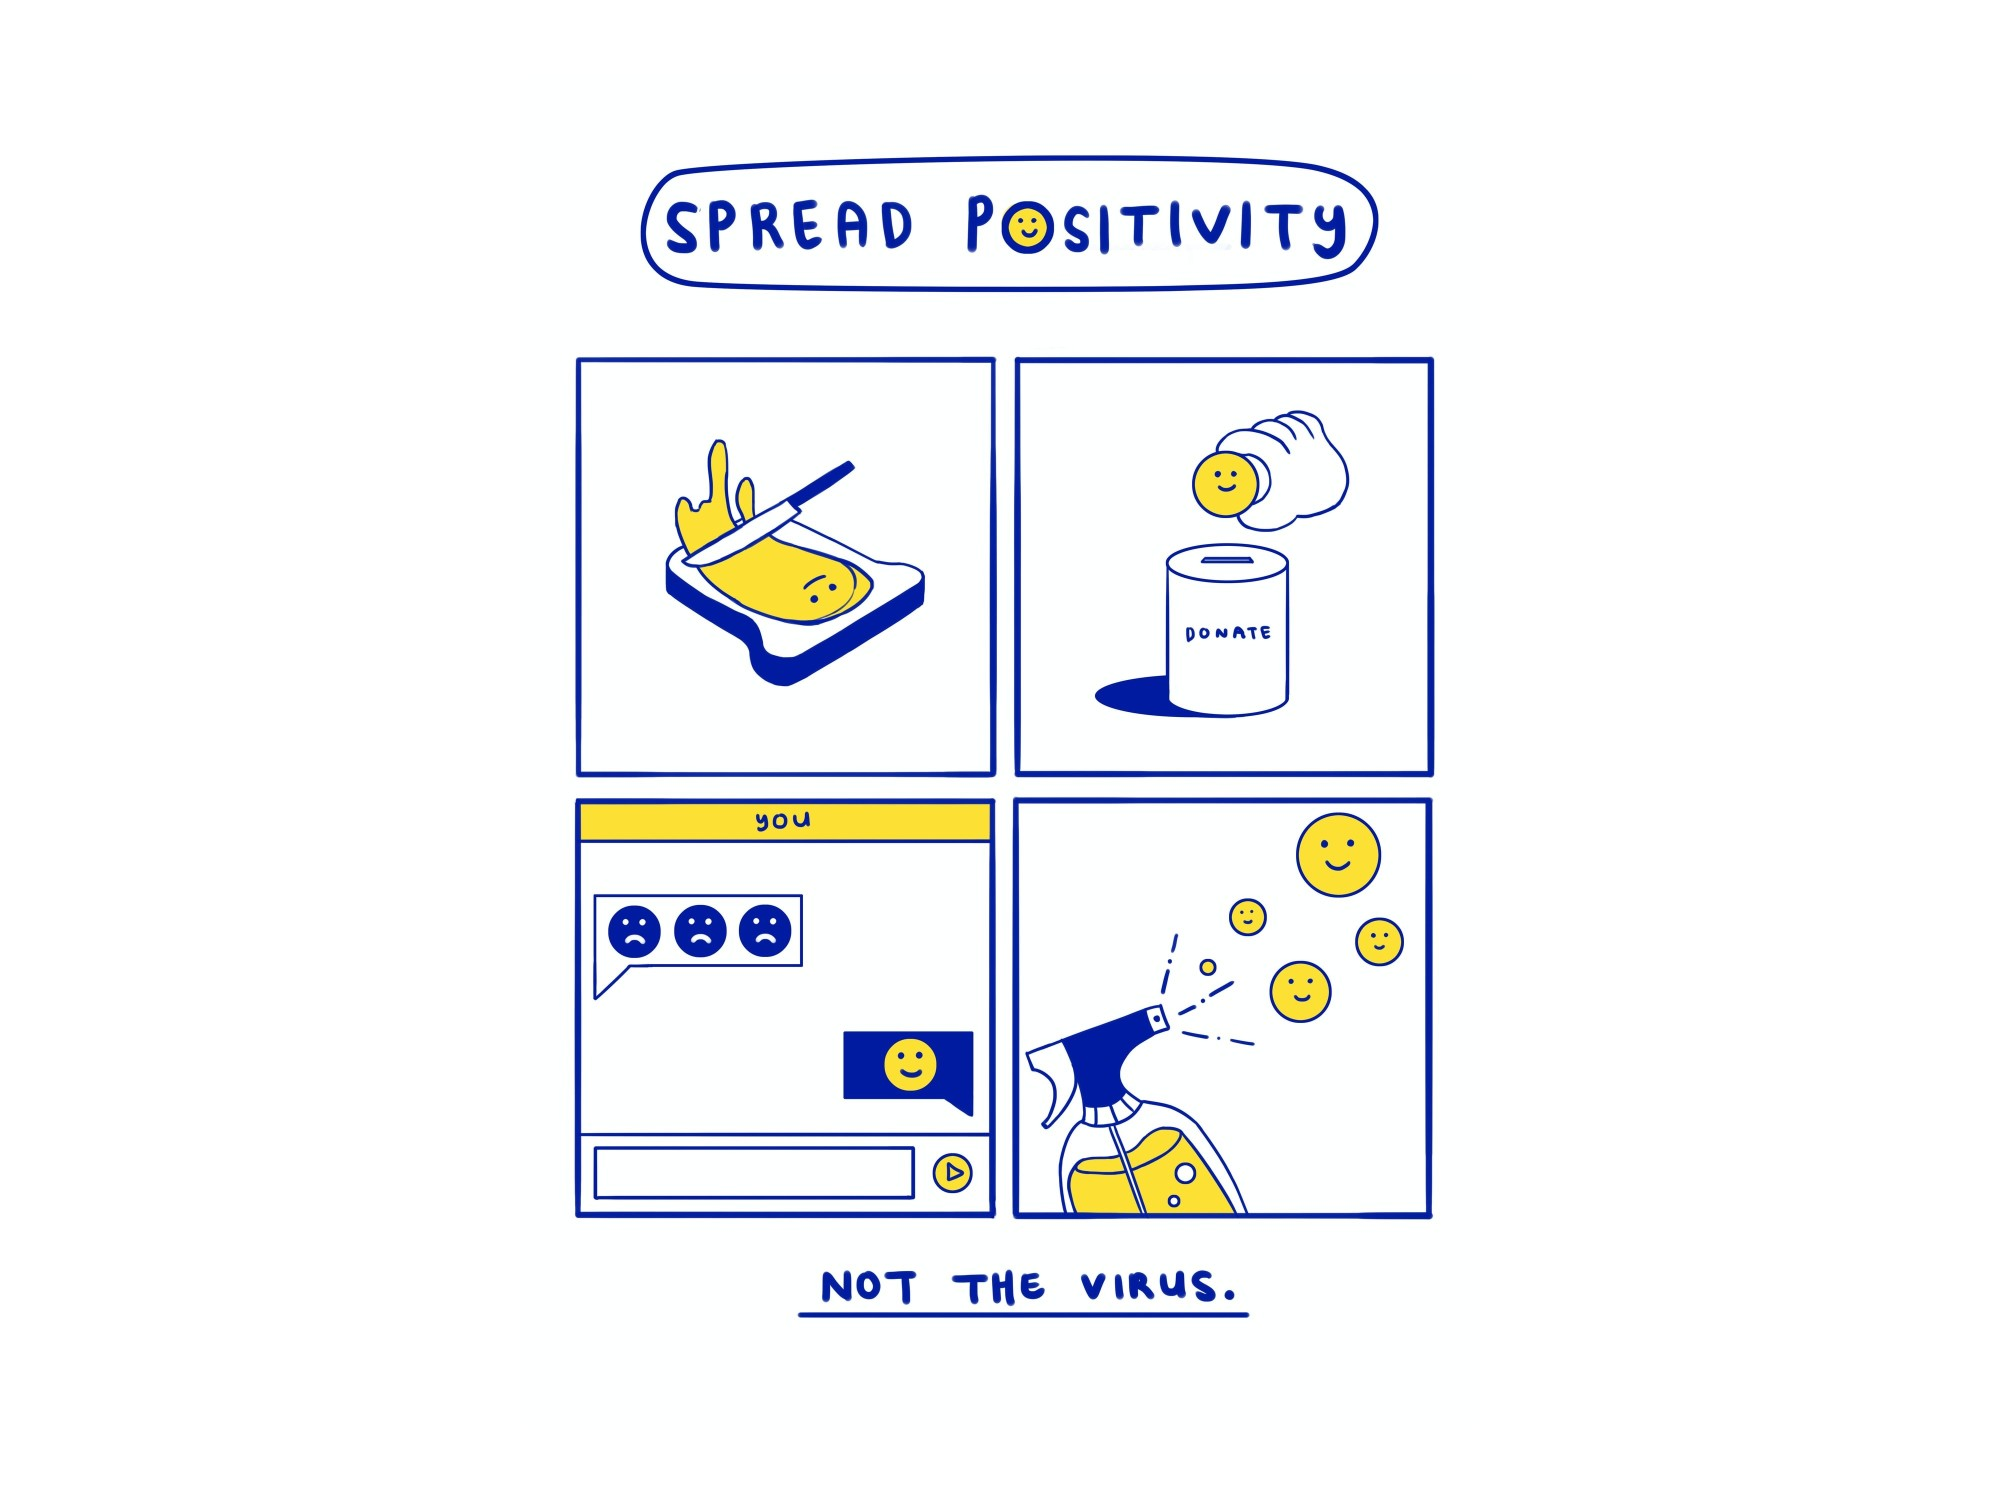 spread-positivity-today